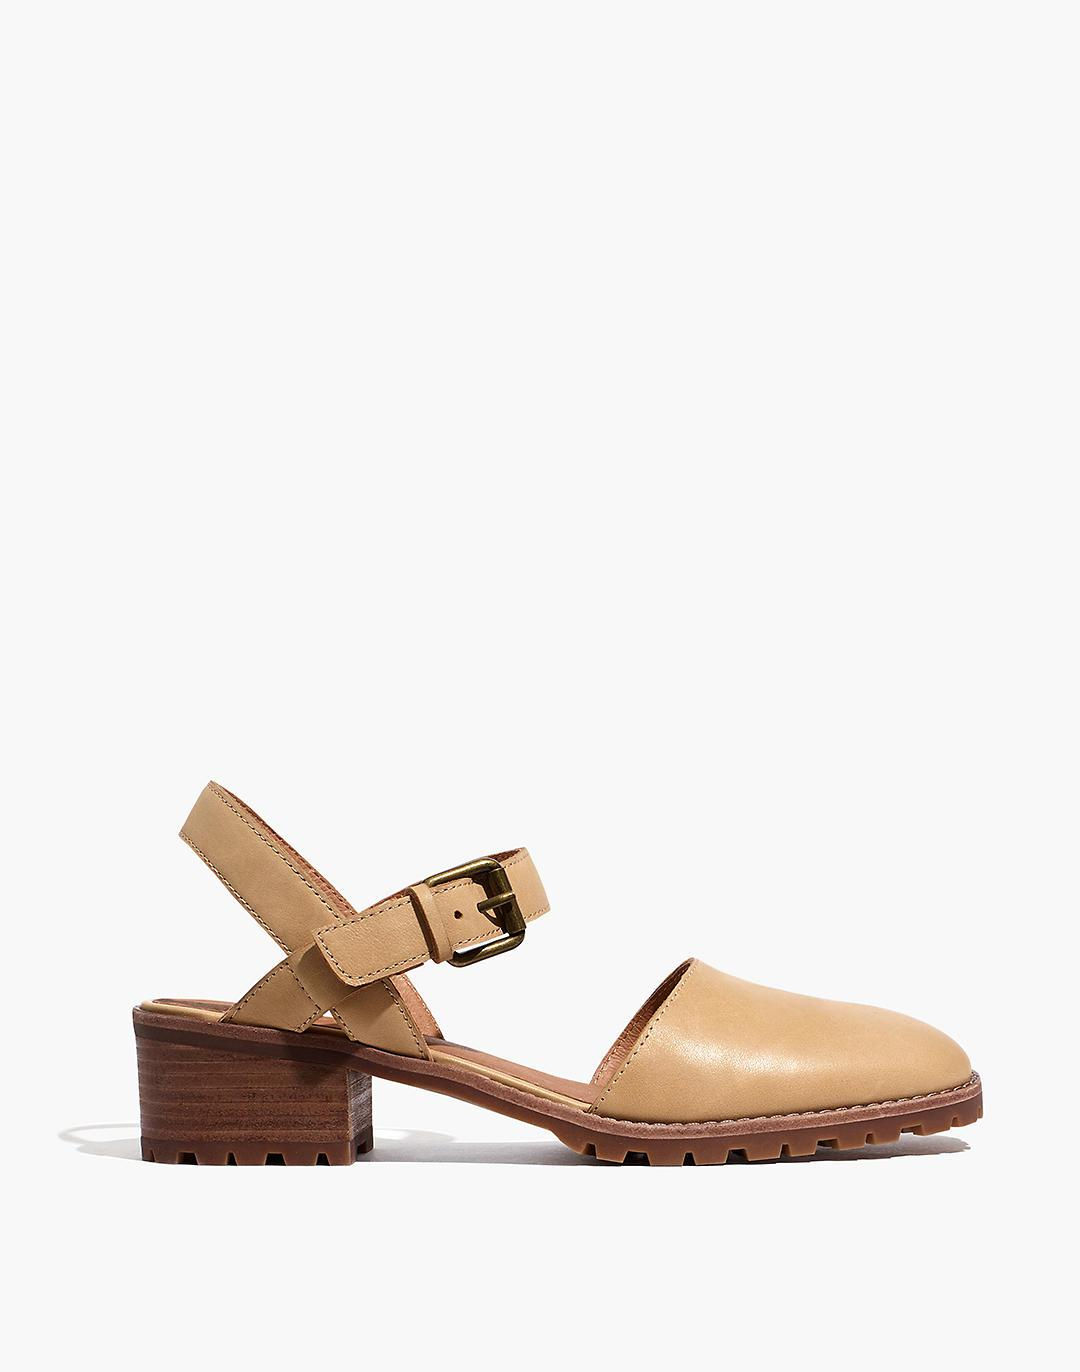 The Claudie Lugsole Mary Jane